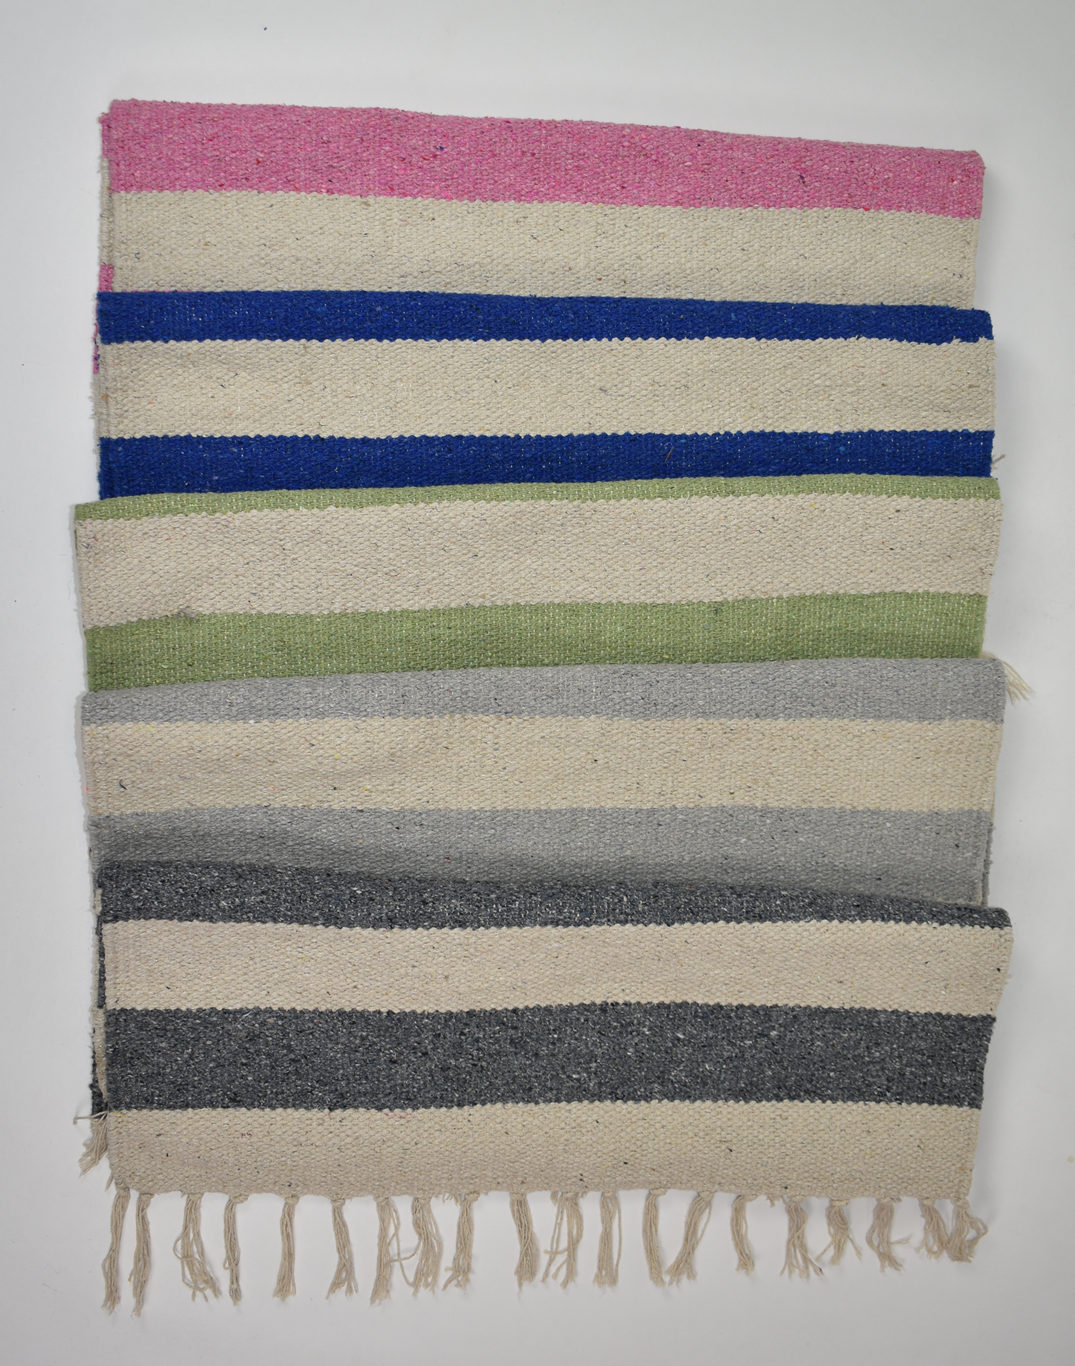 Colourful nautical large stripe rectangle shaped recycled cotton rug